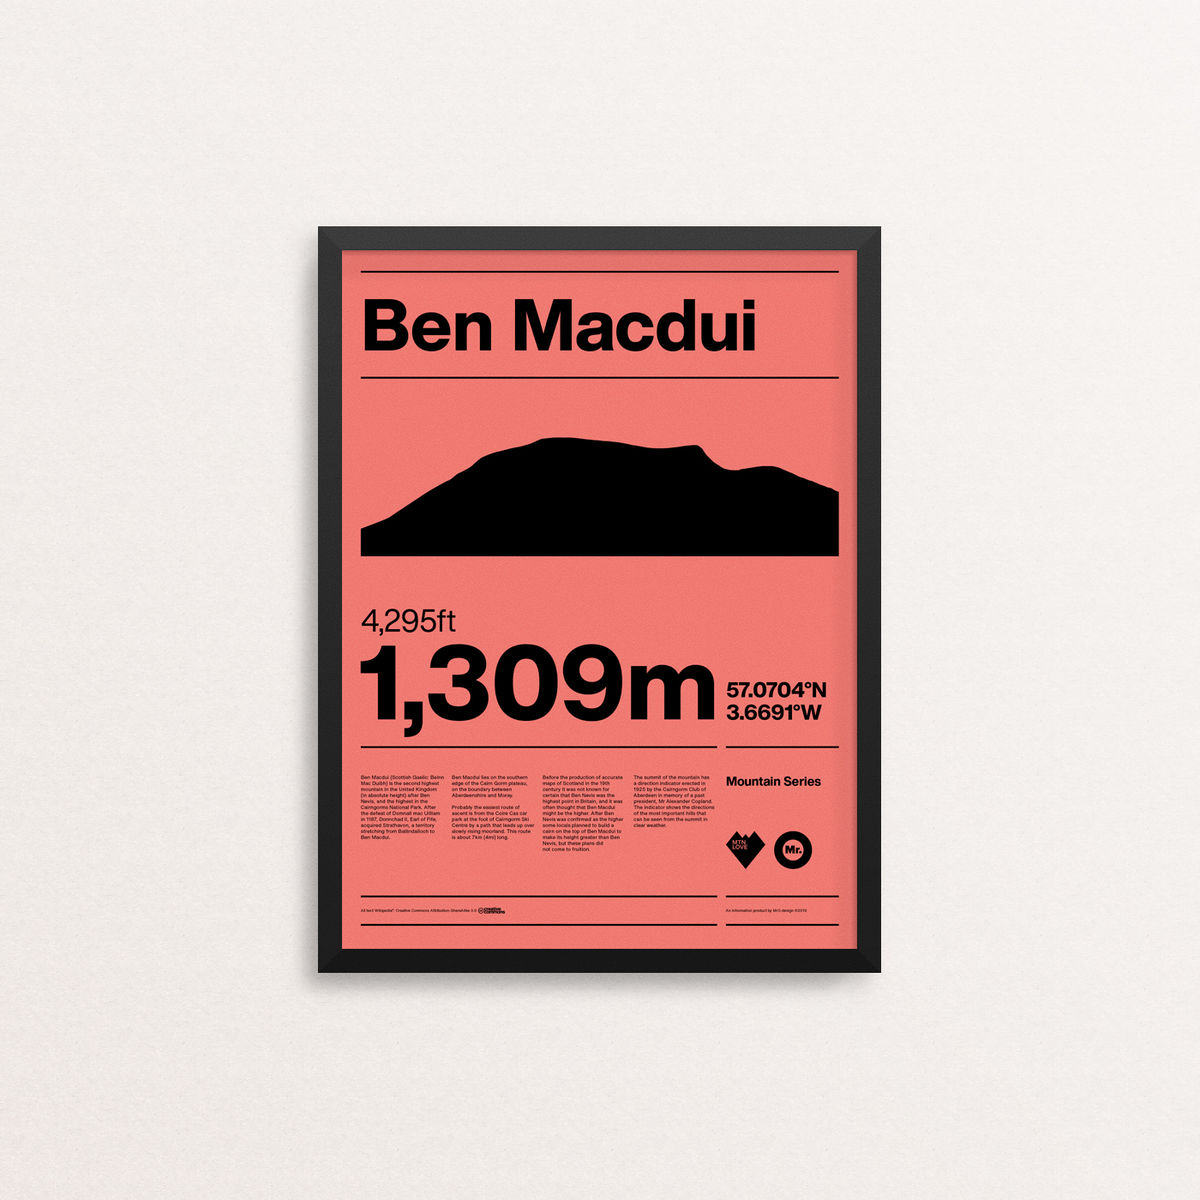 MTN Love - Ben Macdui - product images  of